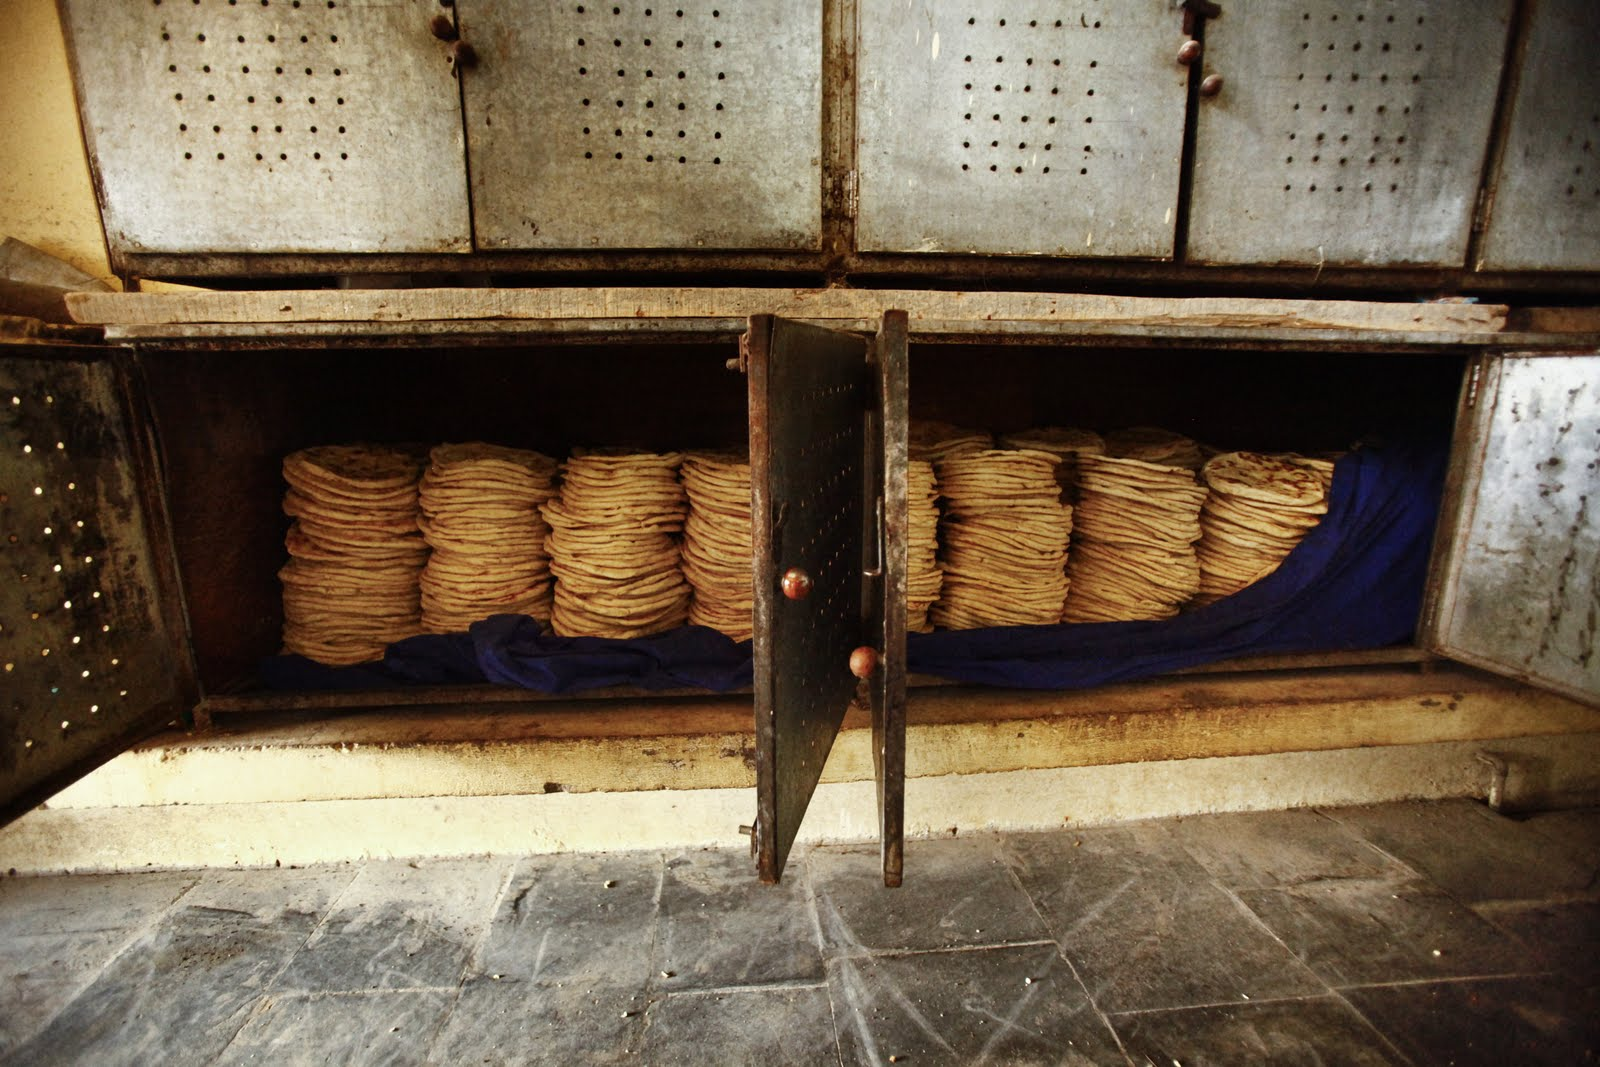 It takes a lot of bread to feed 2,500 monks!